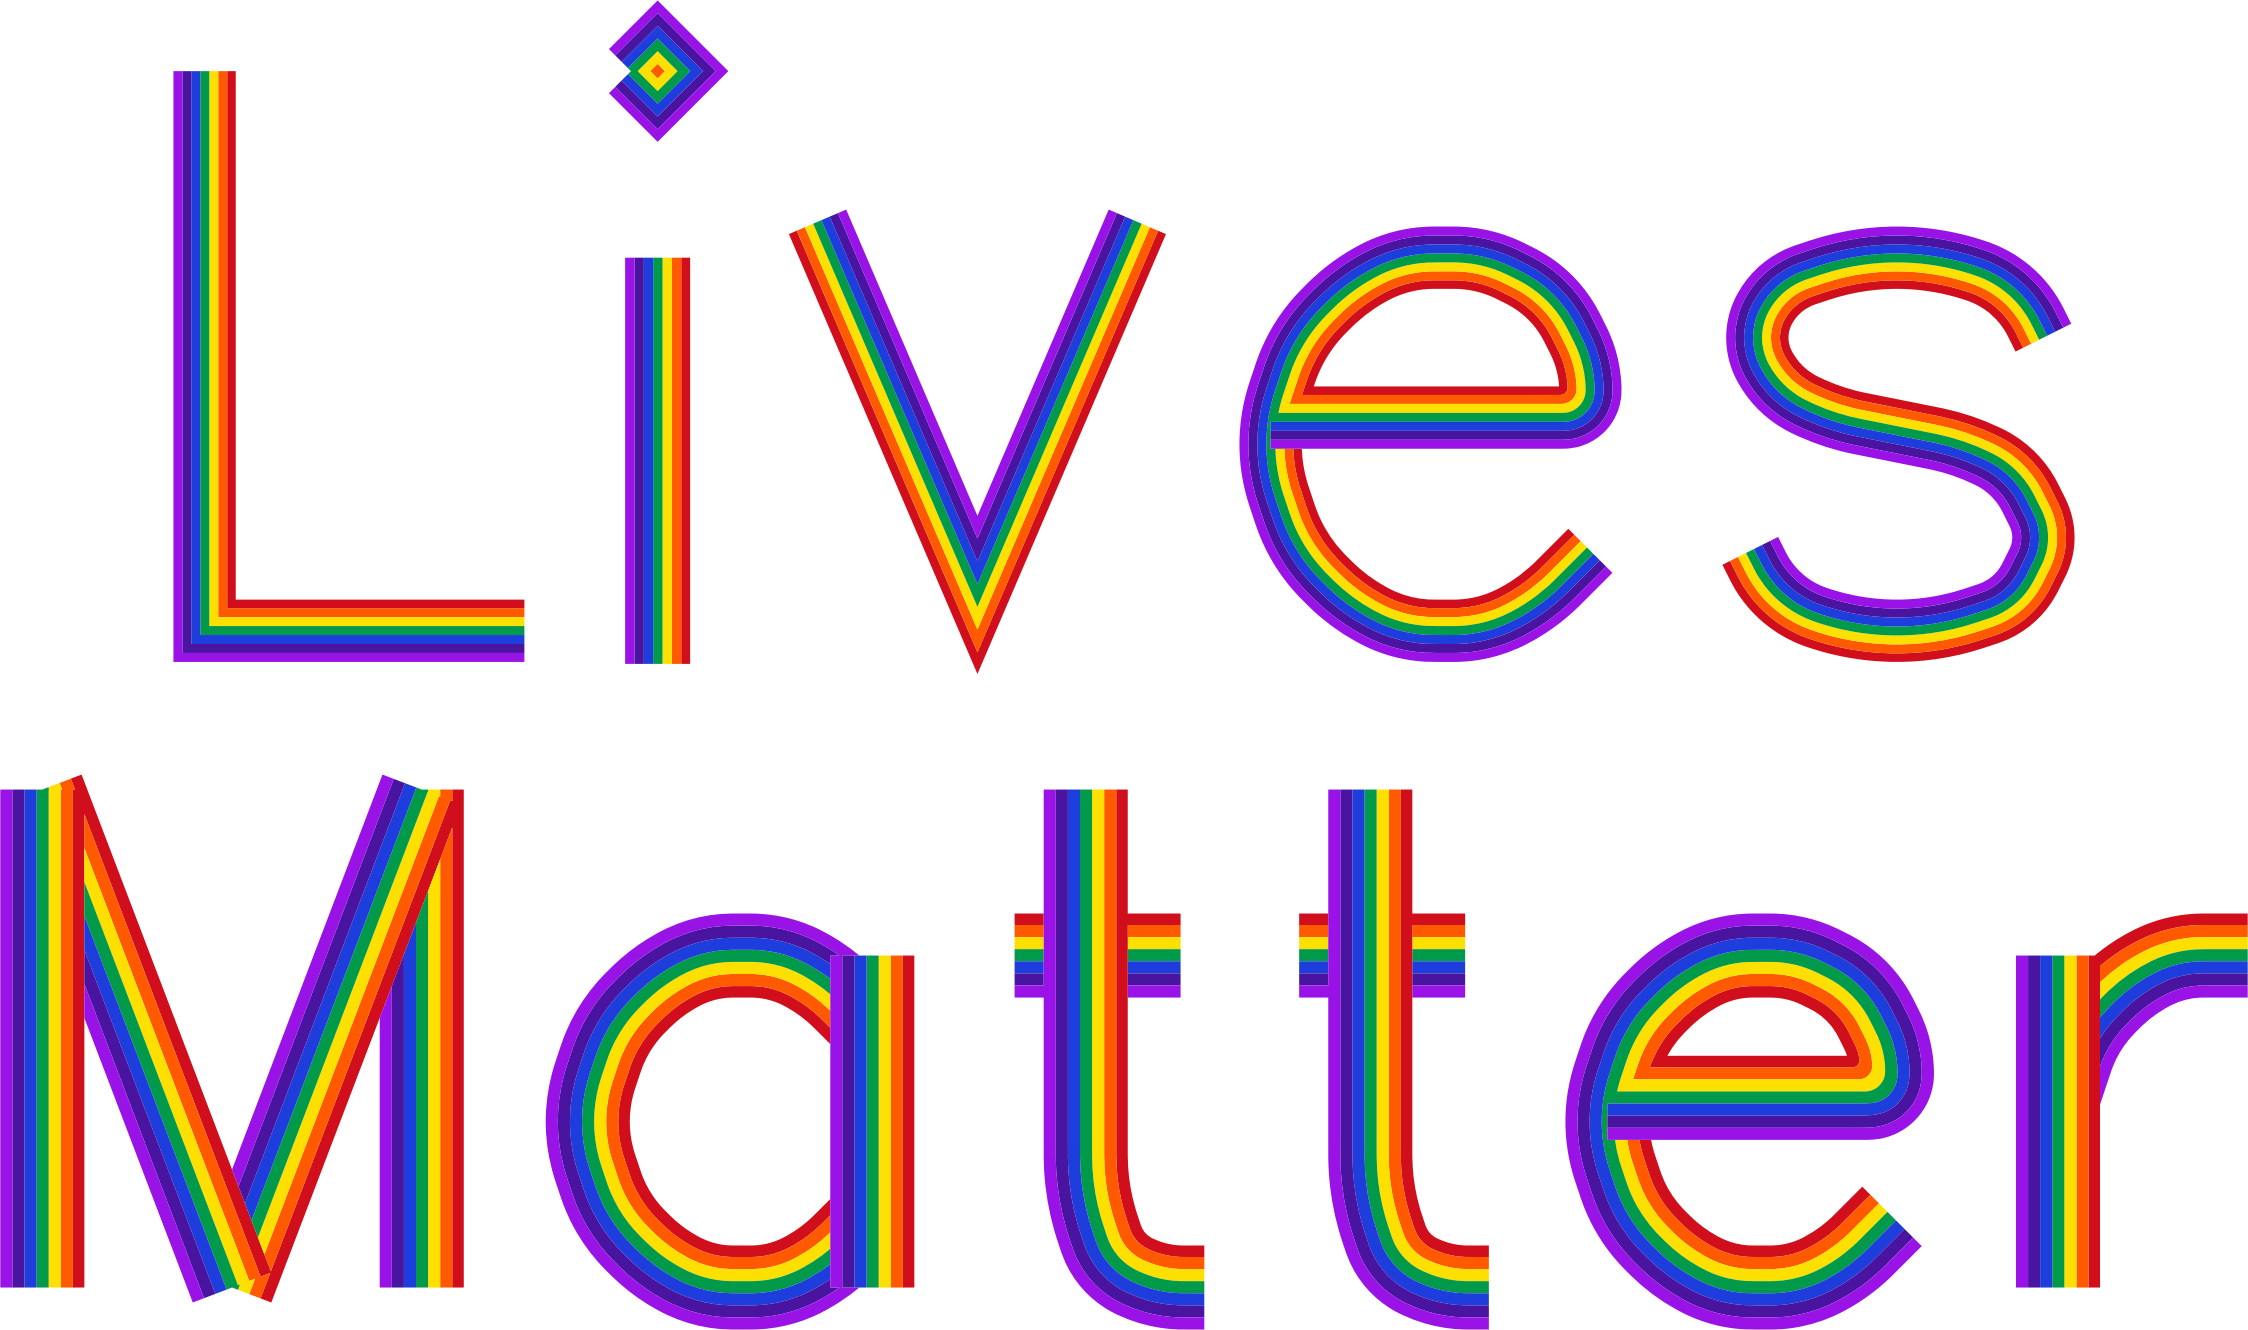 Lives Matter No Background by GDJ